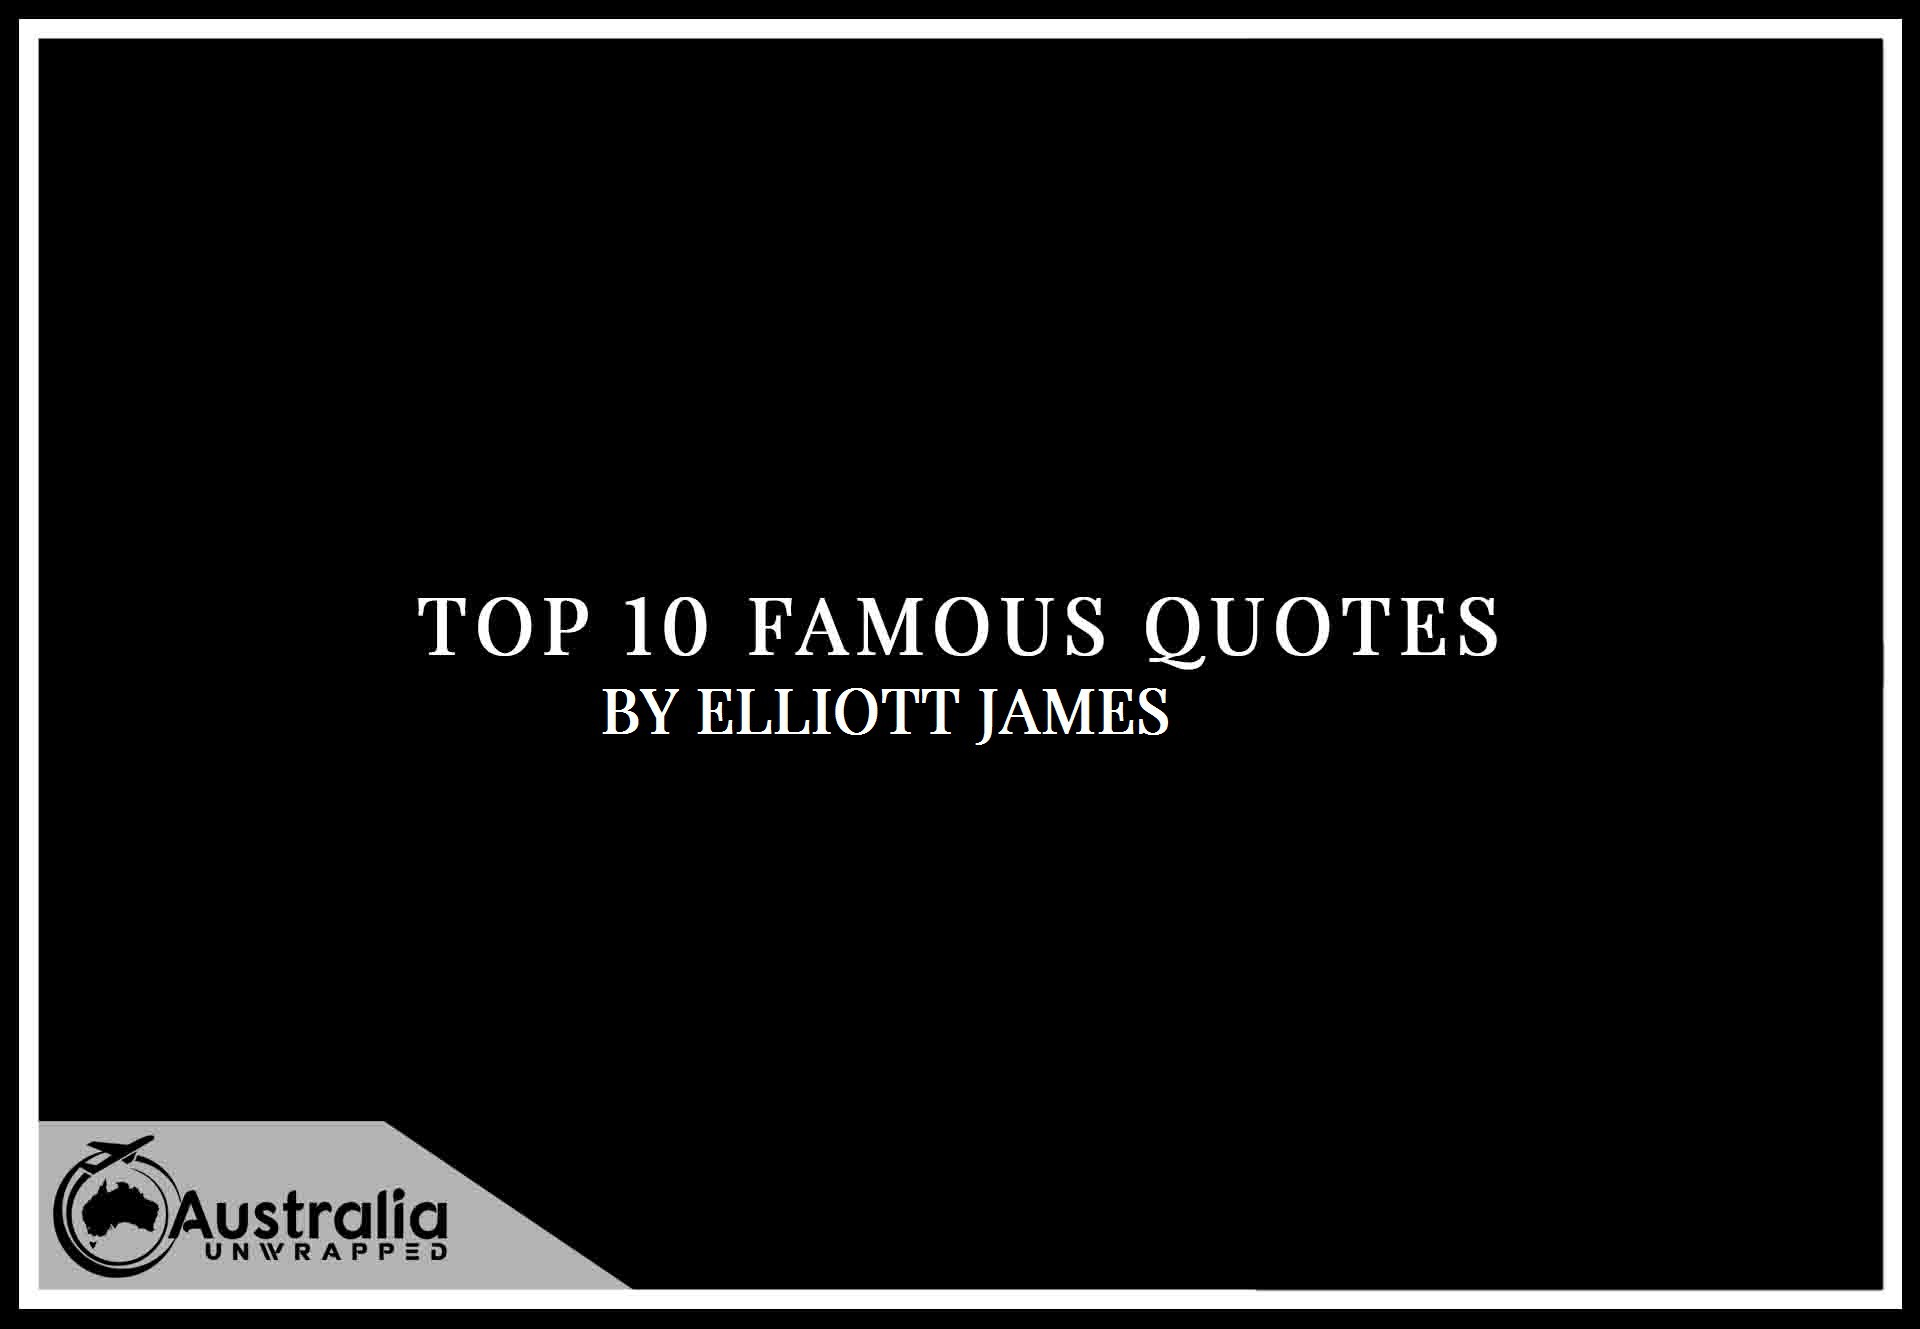 Elliott James's Top 10 Popular and Famous Quotes